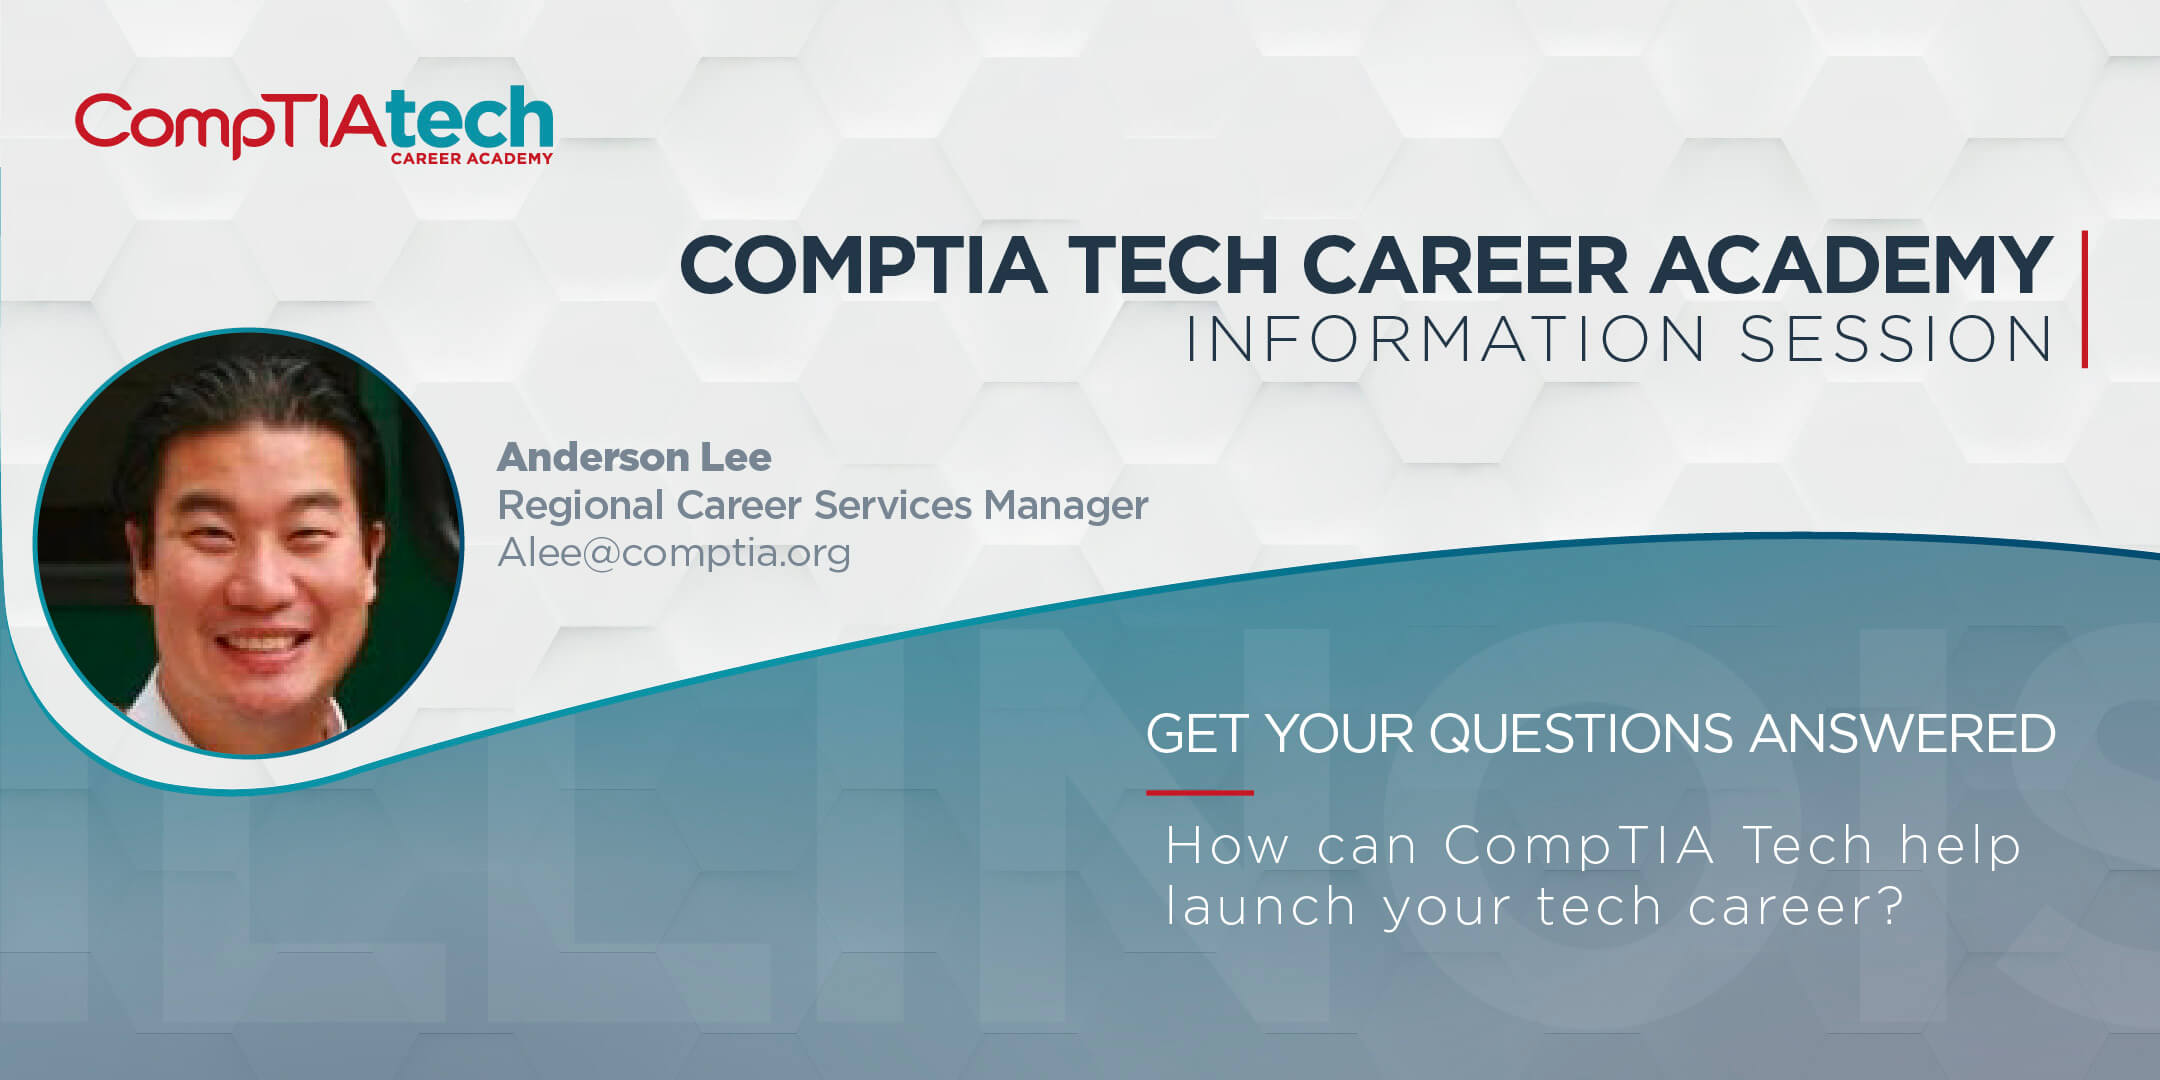 CompTIA Tech Career Academy Information Session